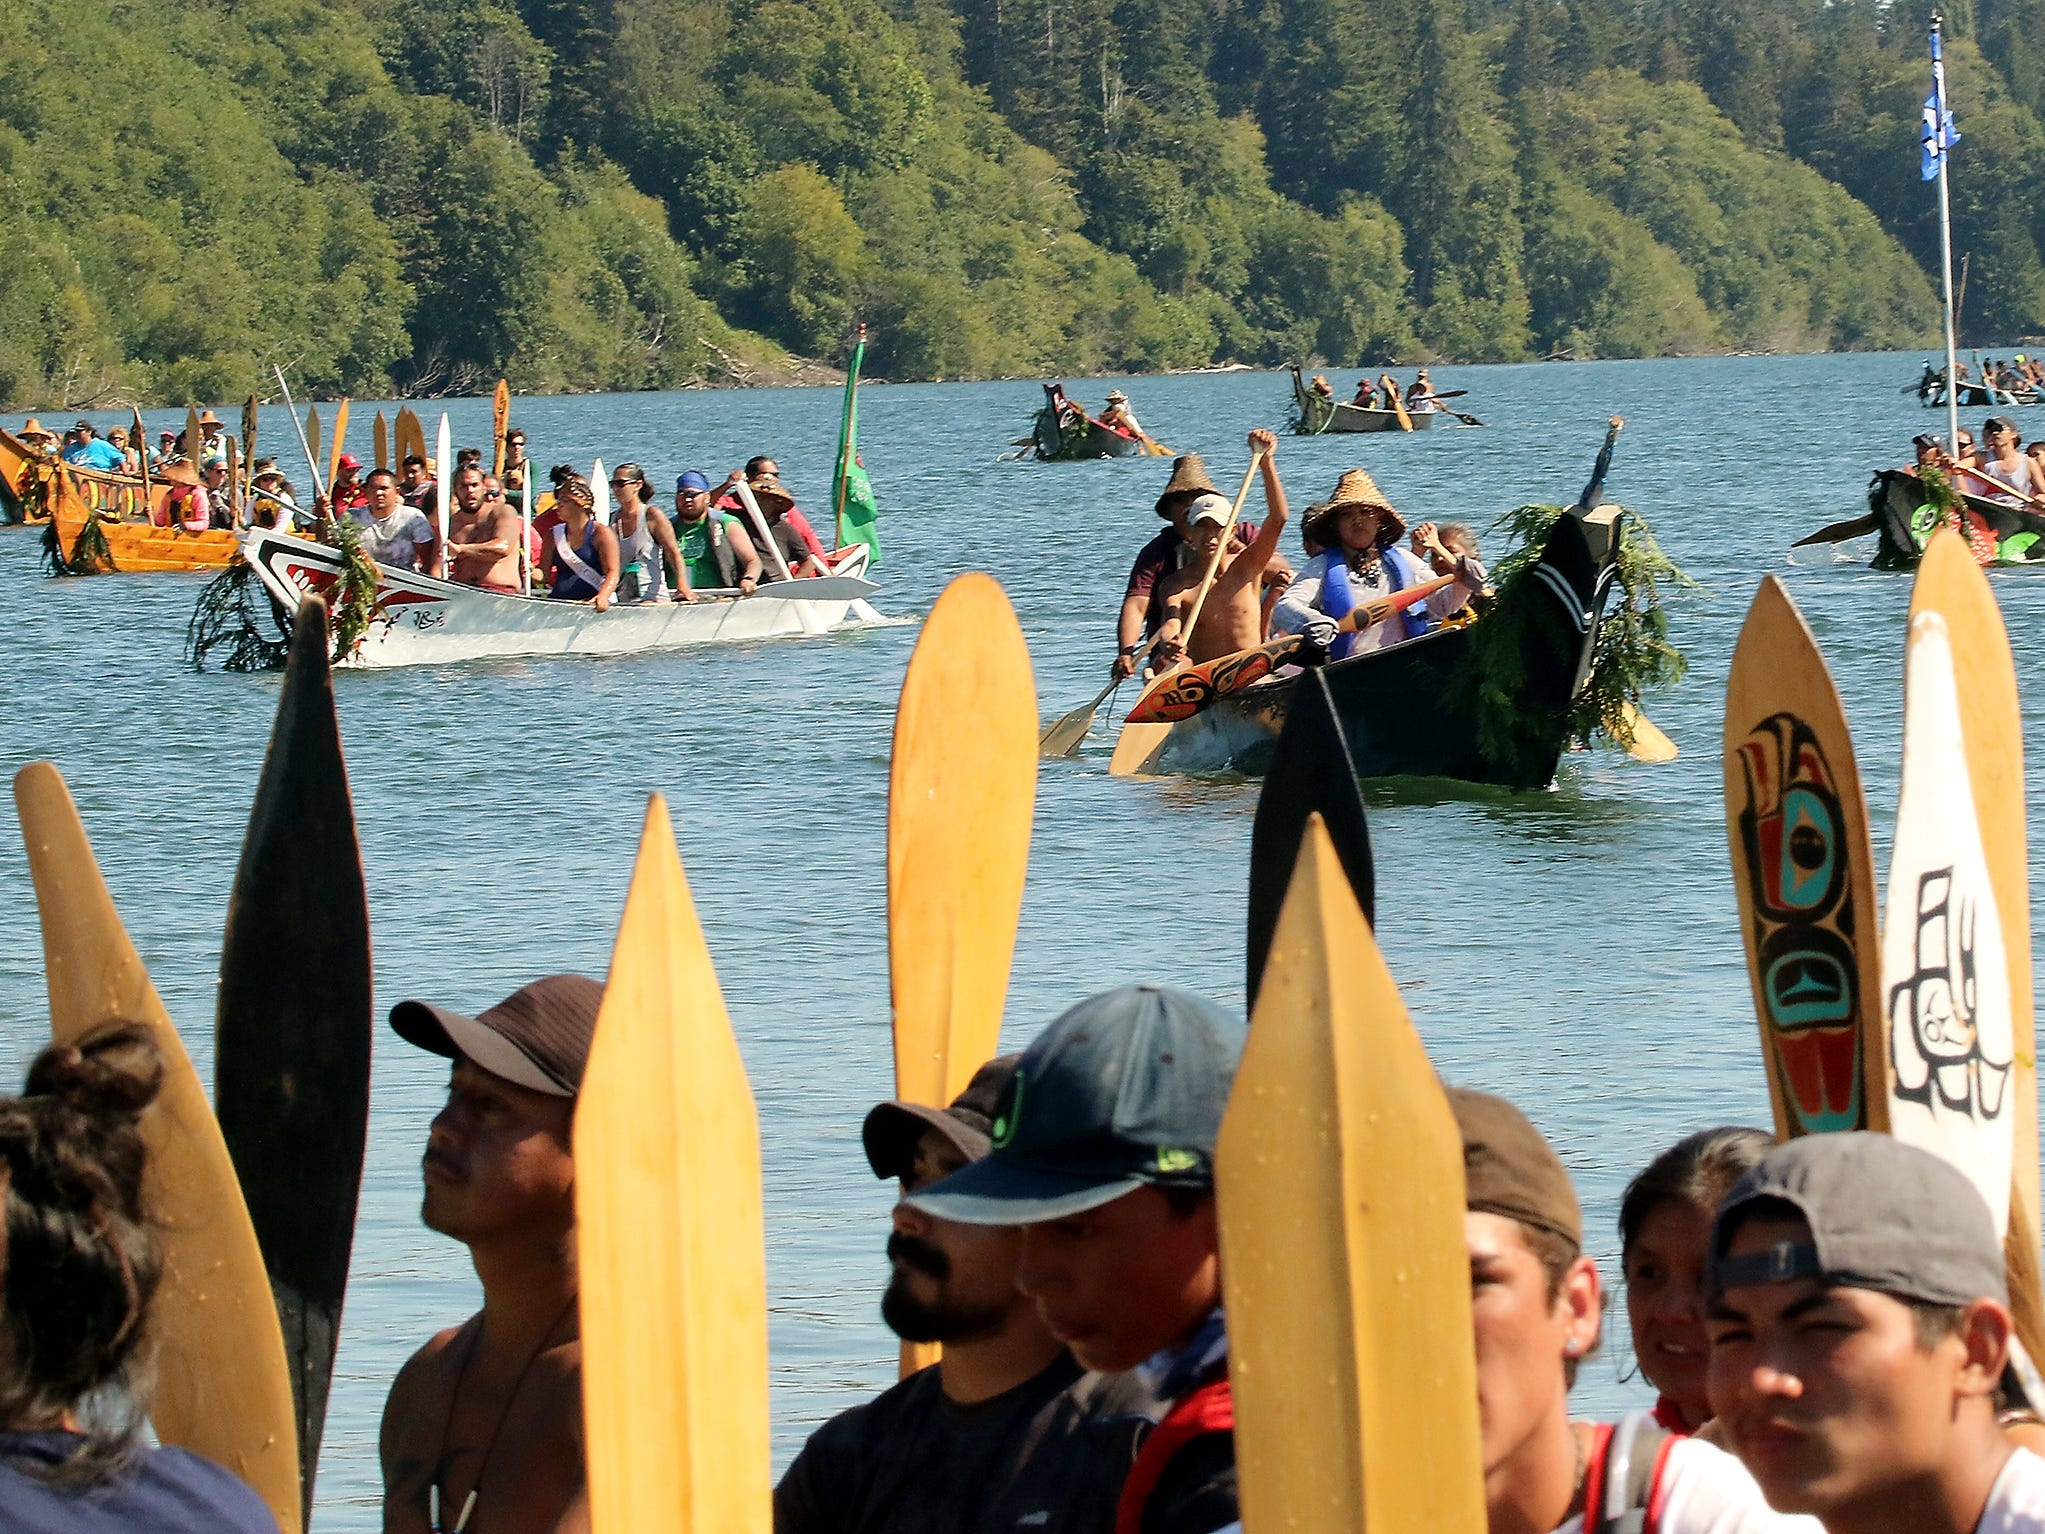 """Tribal Canoe Journey """"Paddle to Puyallup"""" canoes head for the shore to ask and await permission from the Port Gamble S'Klallam Tribe to come ashore at Point Julia on Tuesday, July 24, 2018."""